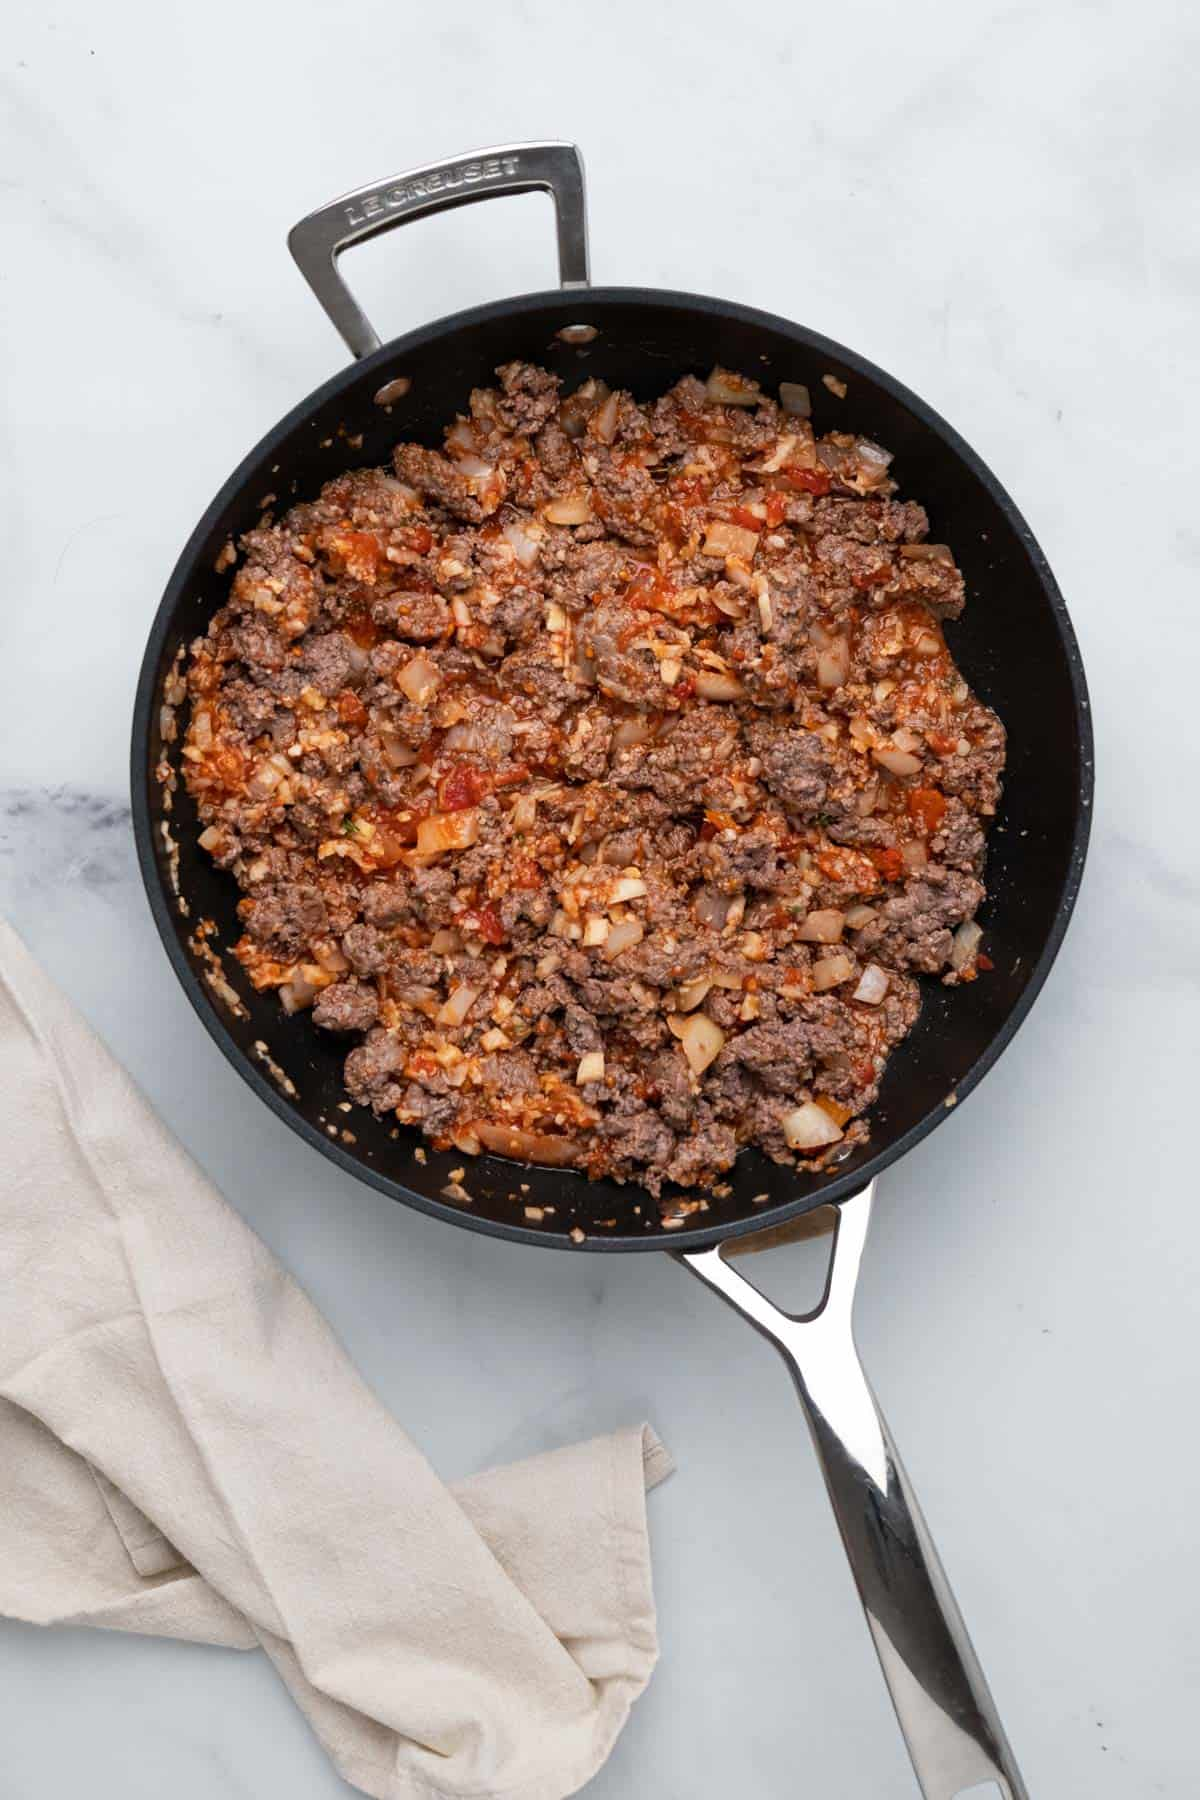 cooked mince, onion and tomato mixture in a pan